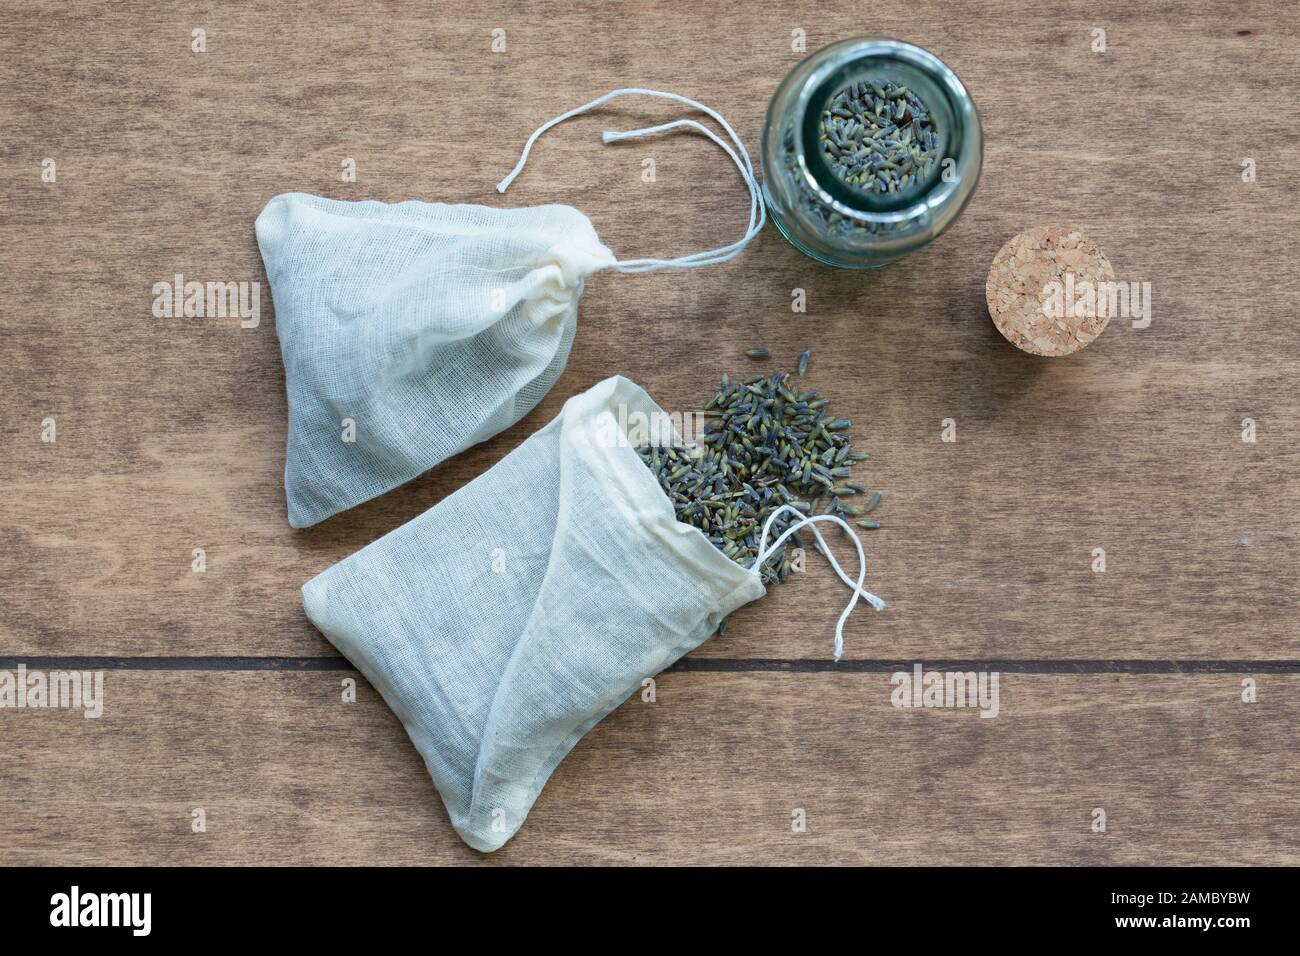 Dried organic lavender flowers in muslin pouches for use in dryer as a replacement for dryer sheets. Stock Photo